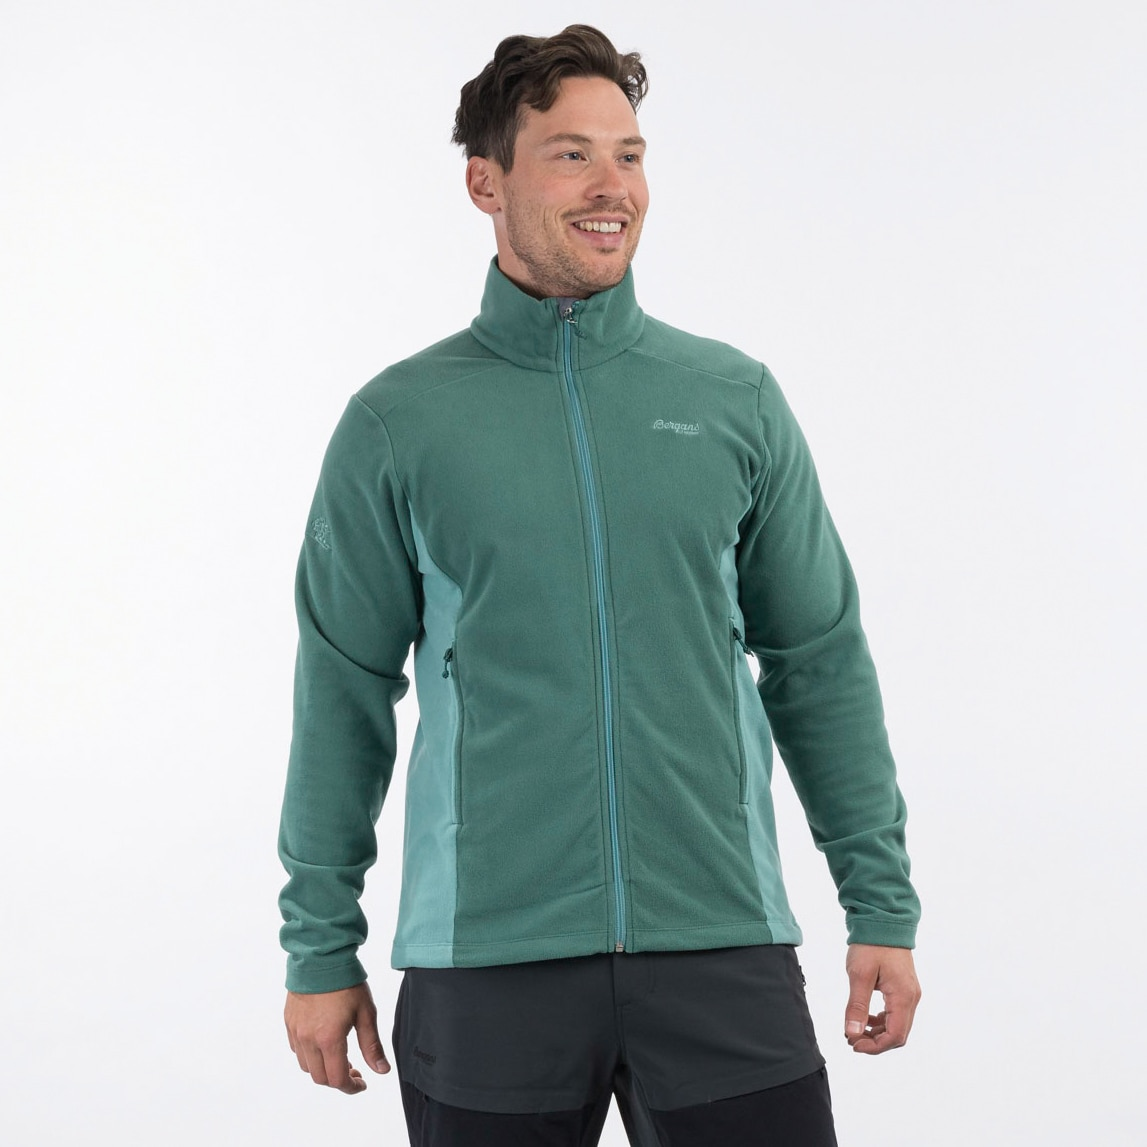 Finnsnes Fleece Jacket